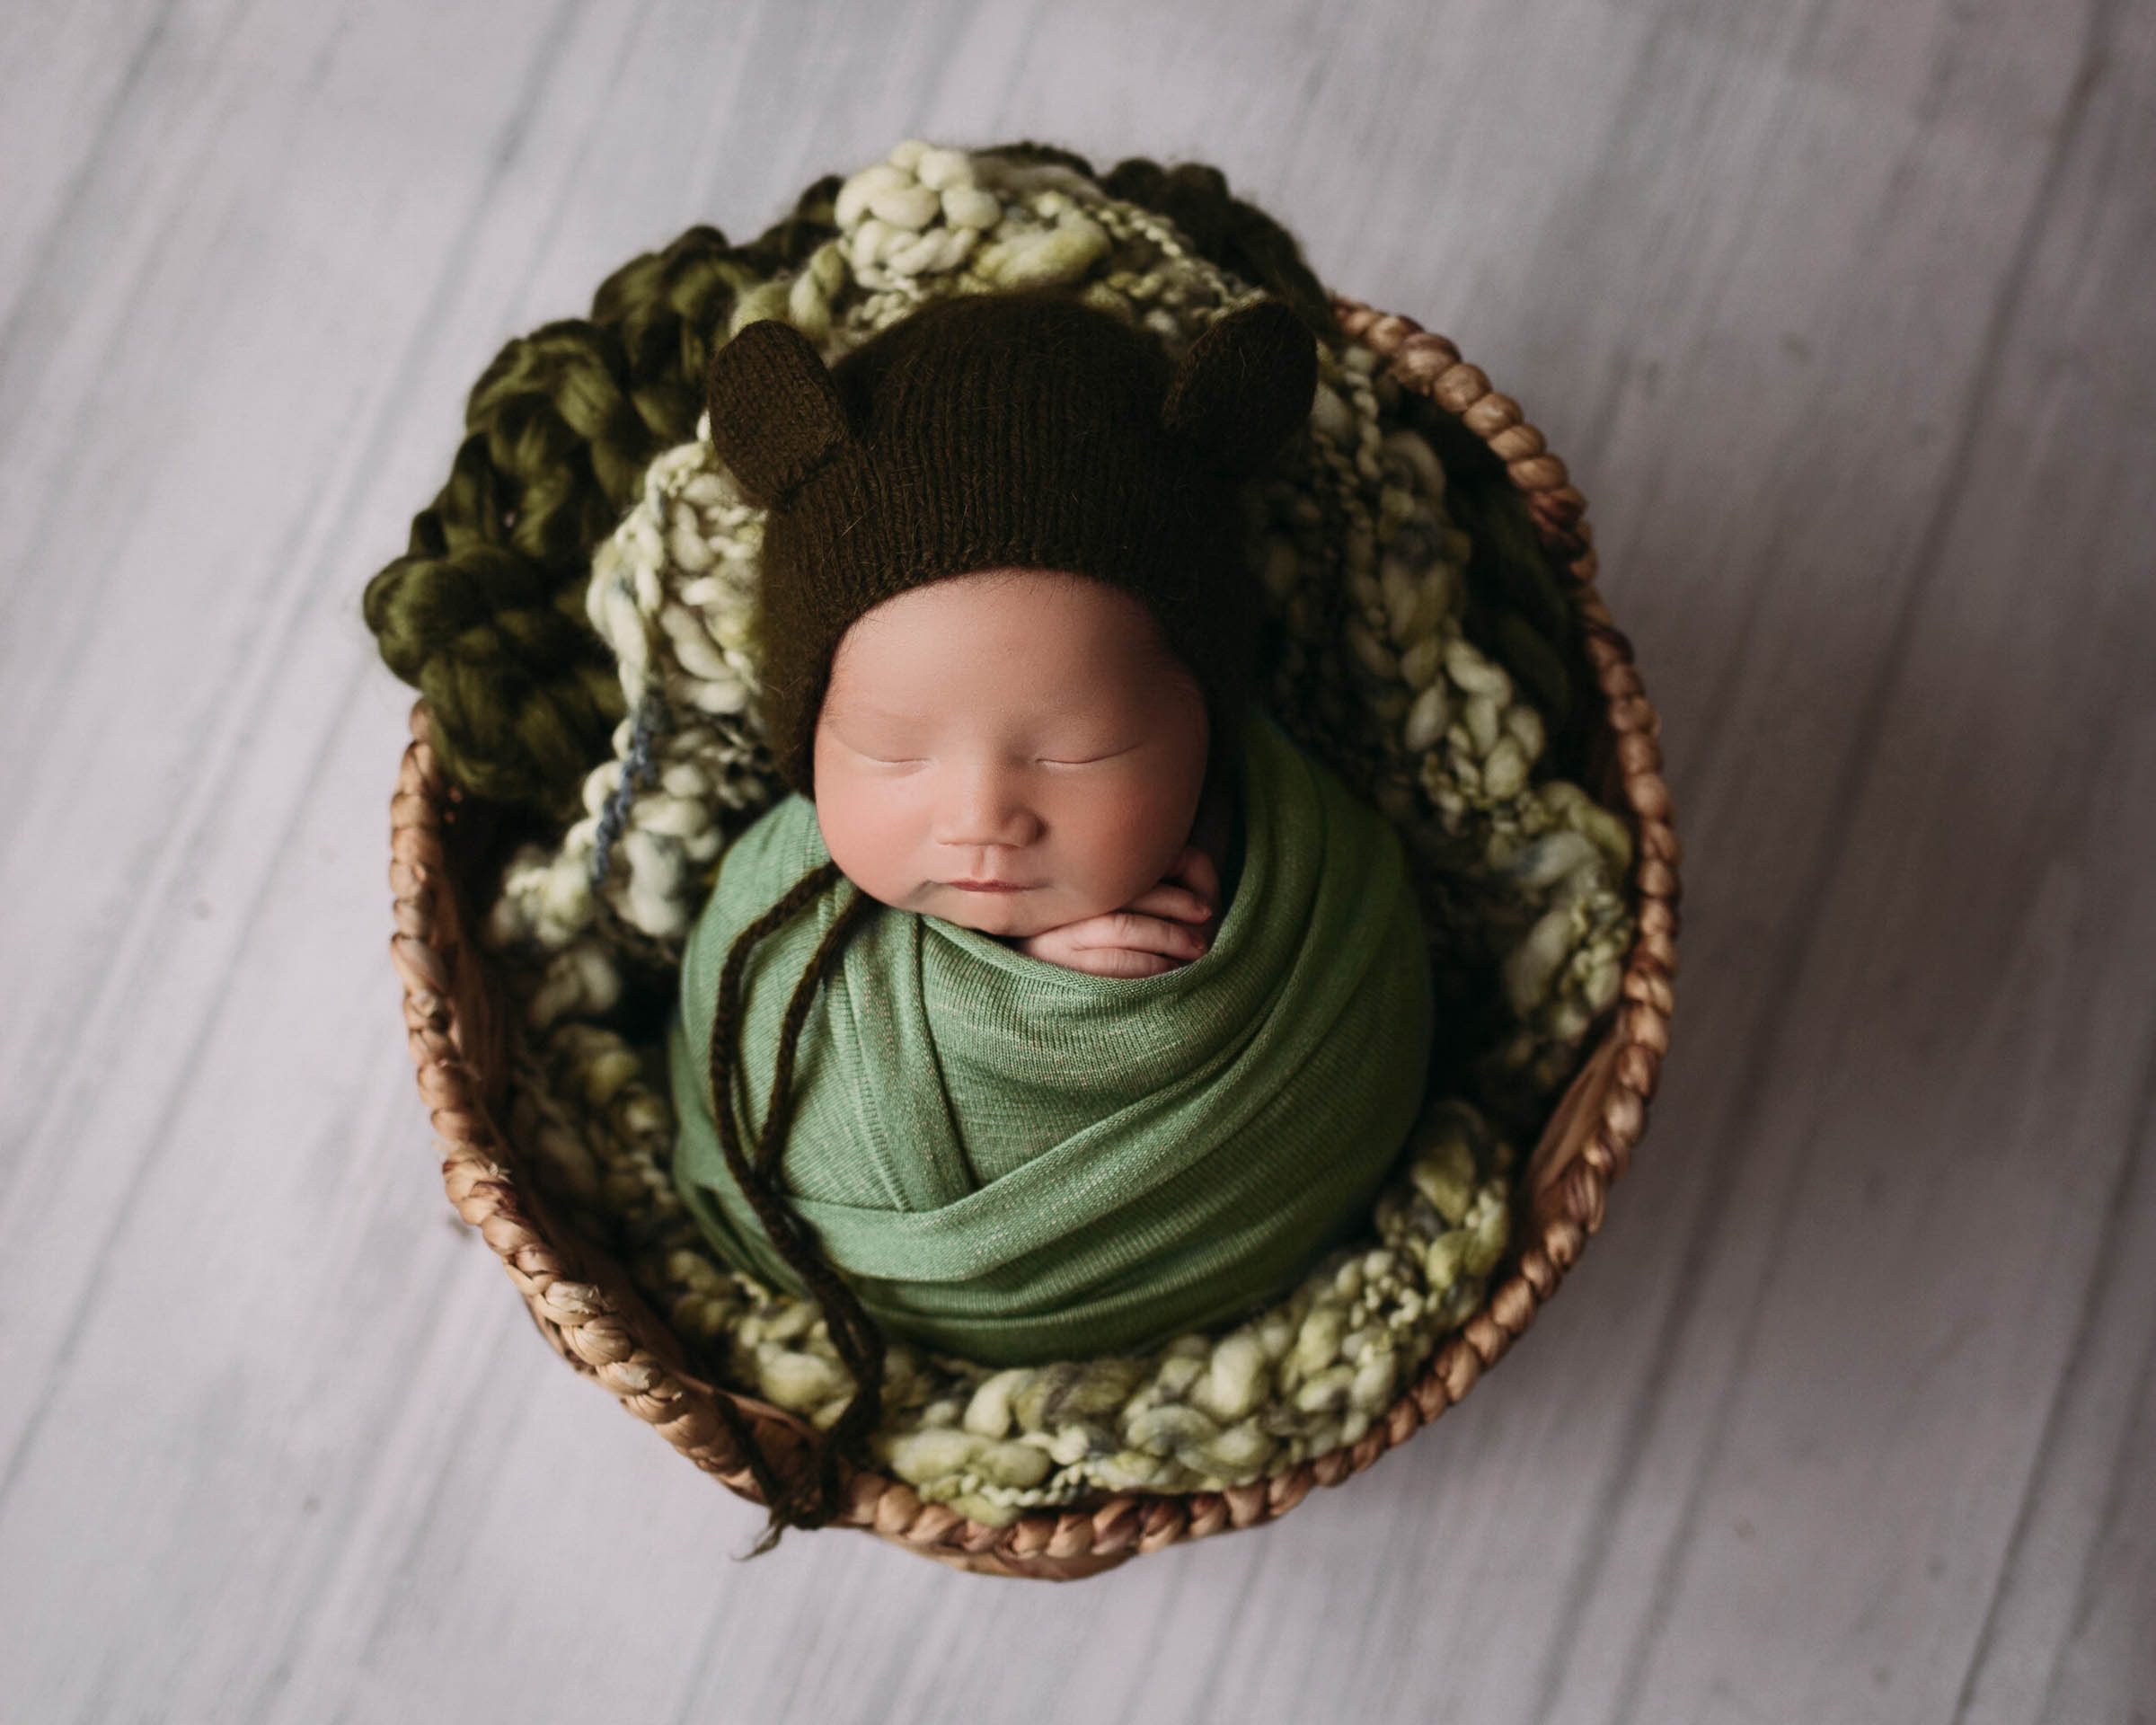 baby boy in greens and bear bonnet for newborn photographer in minneapolis mn